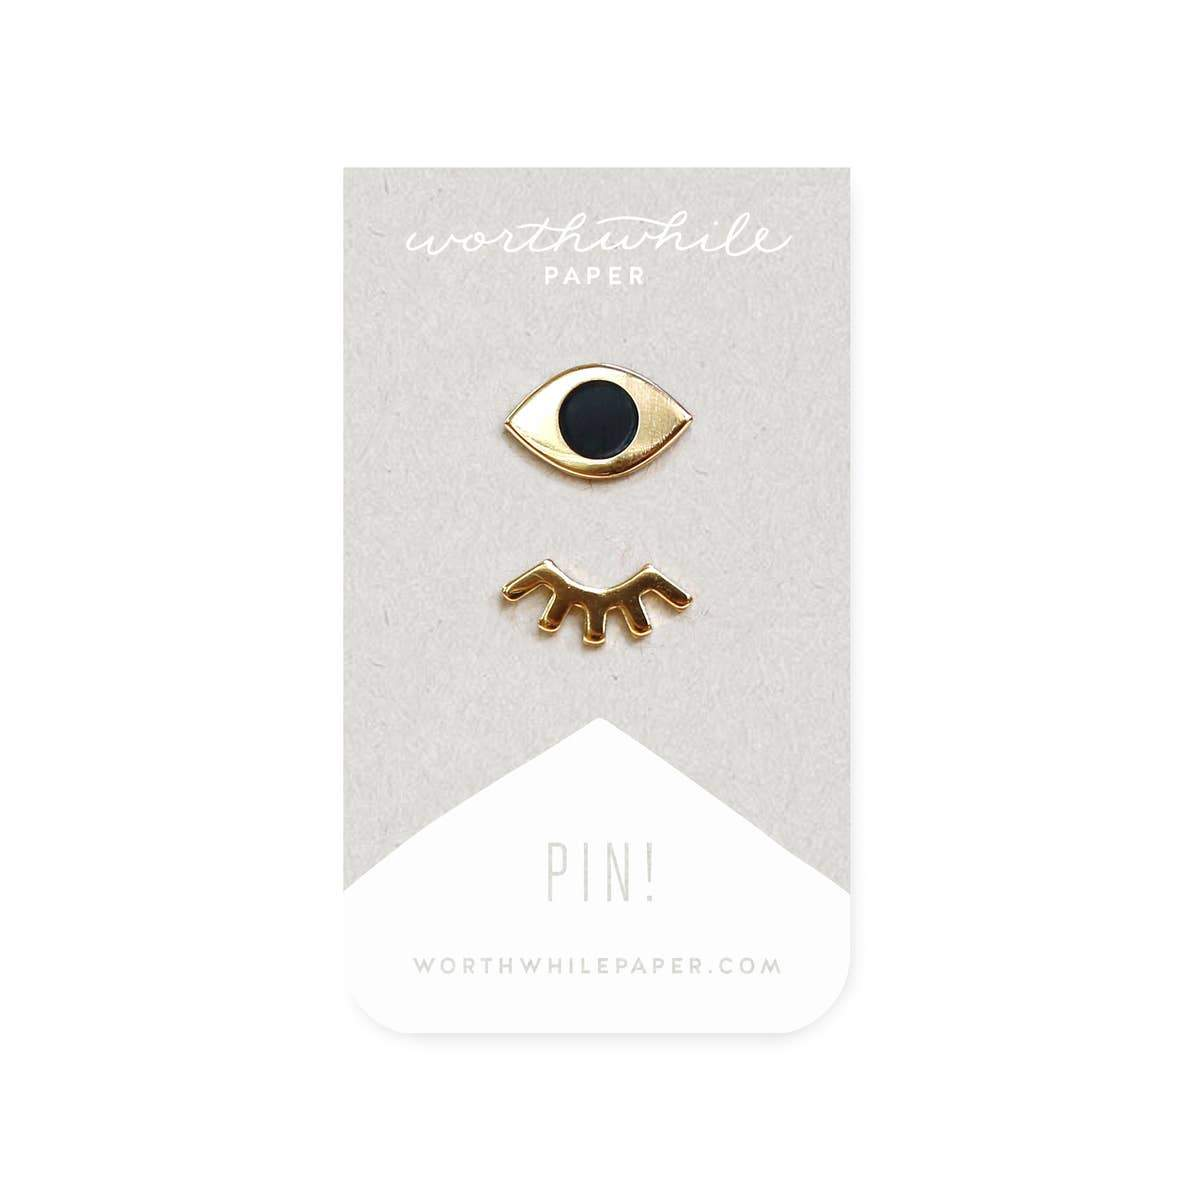 Winks Enamel Pin Set - Worthwhile Paper -Freehand Market